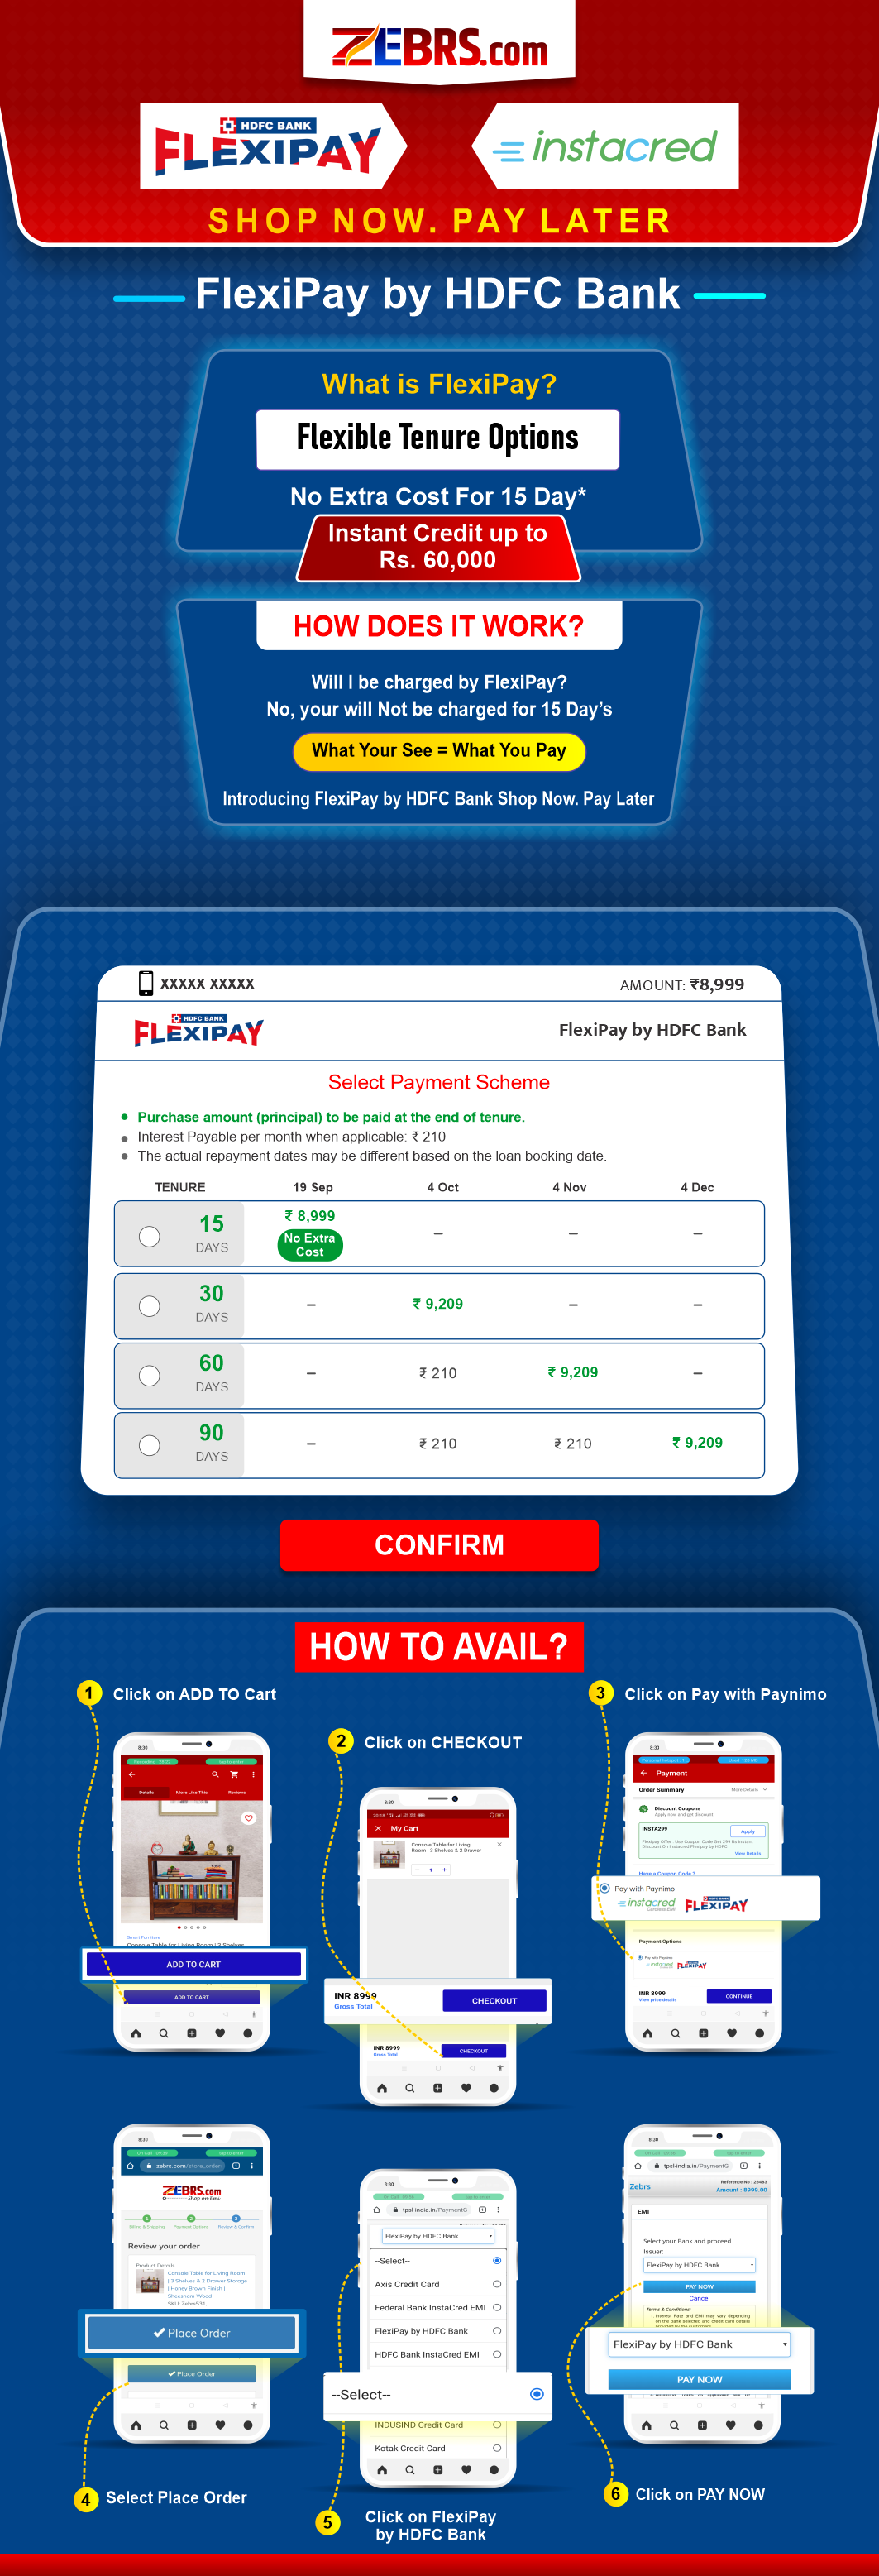 Instacred FlexiPay By HDFC Bank